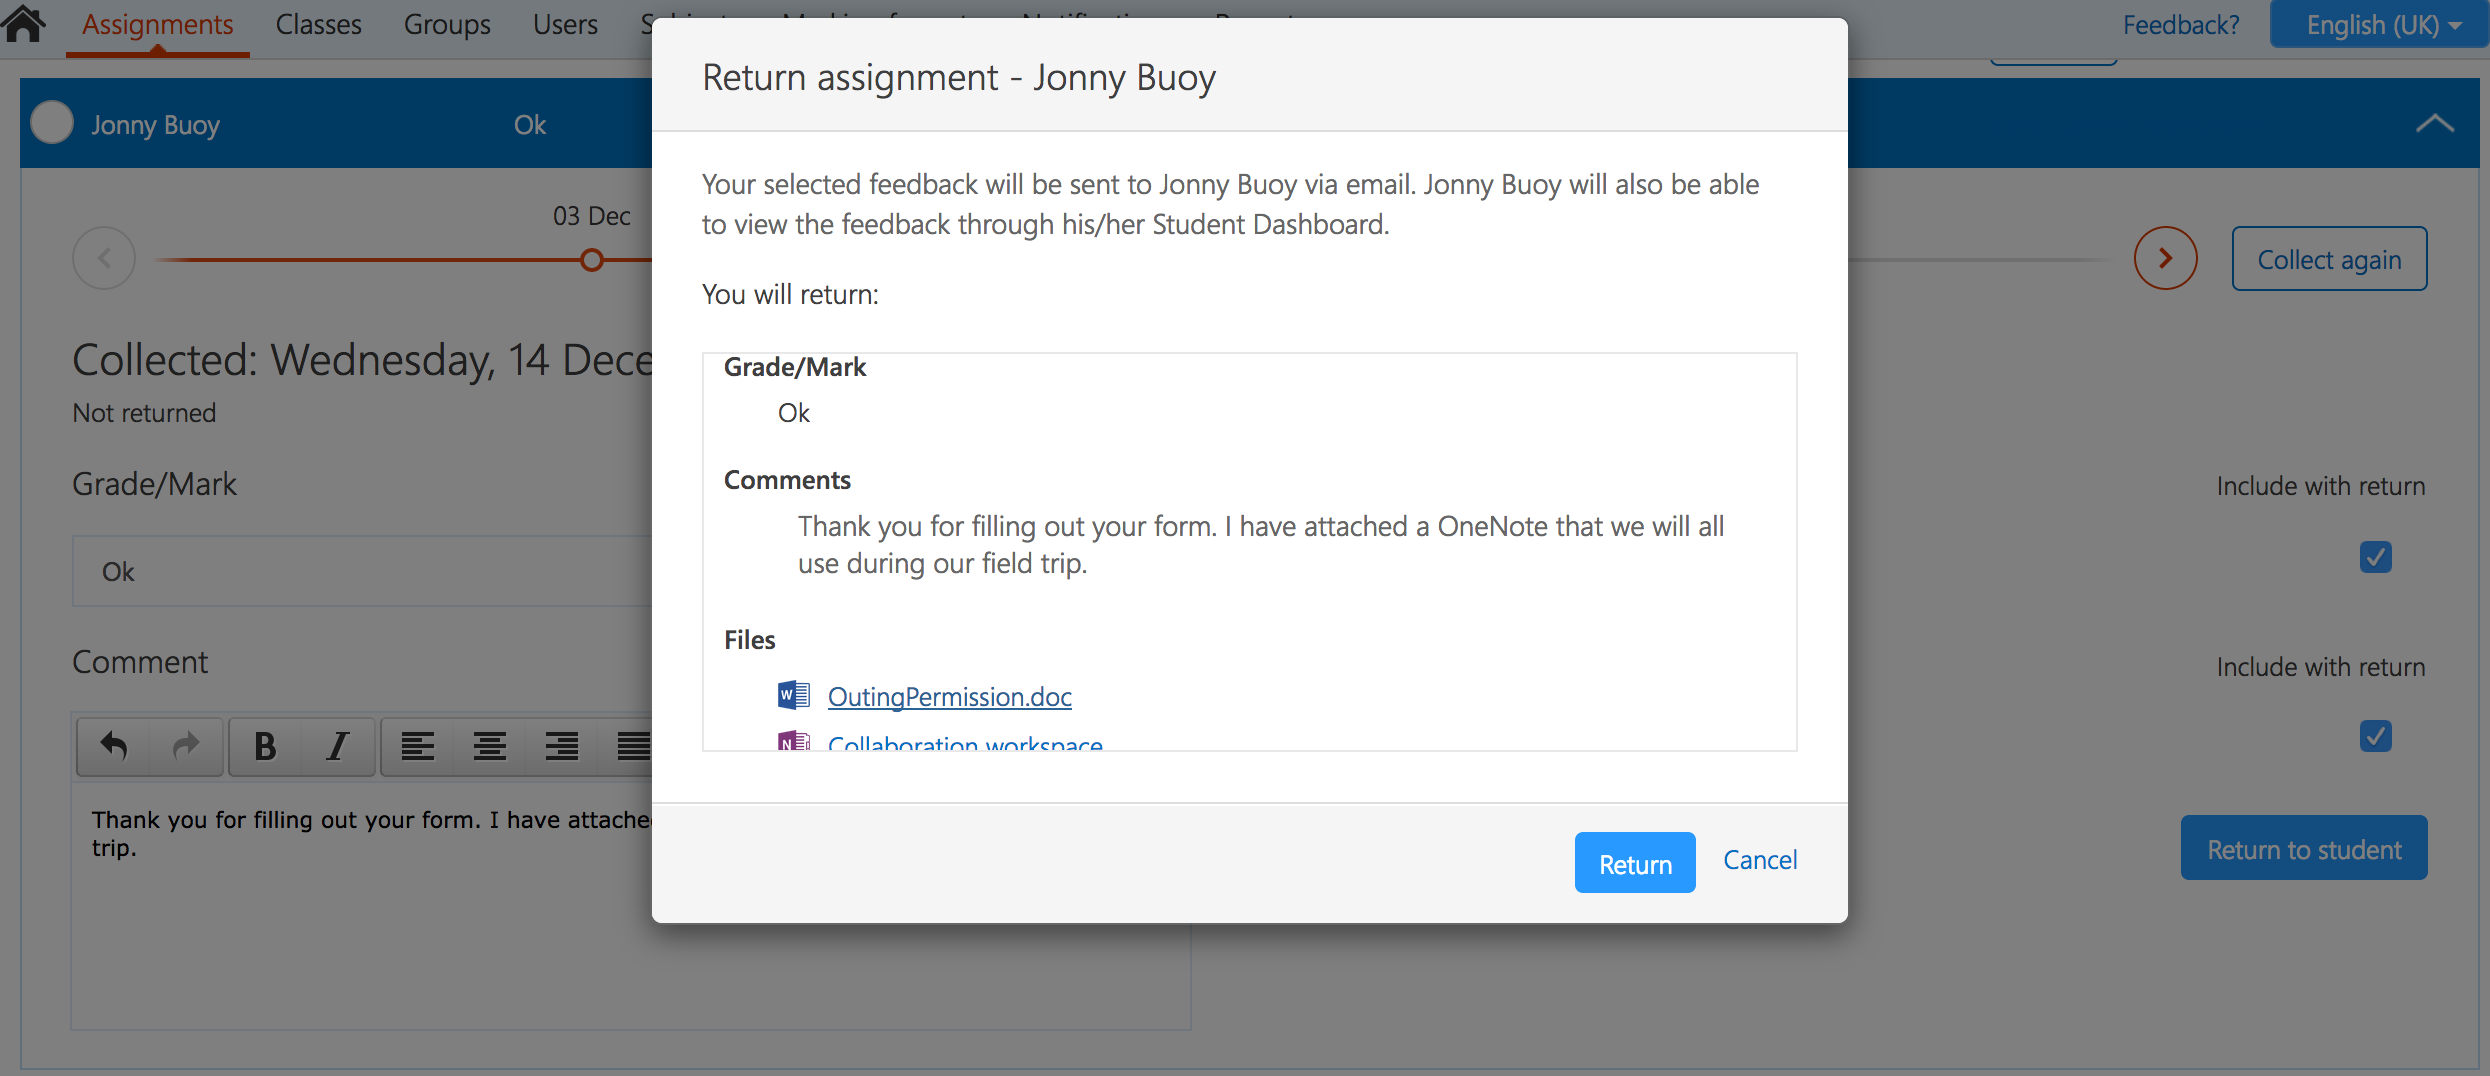 Screenshot showing Assignment Return confirmation screen